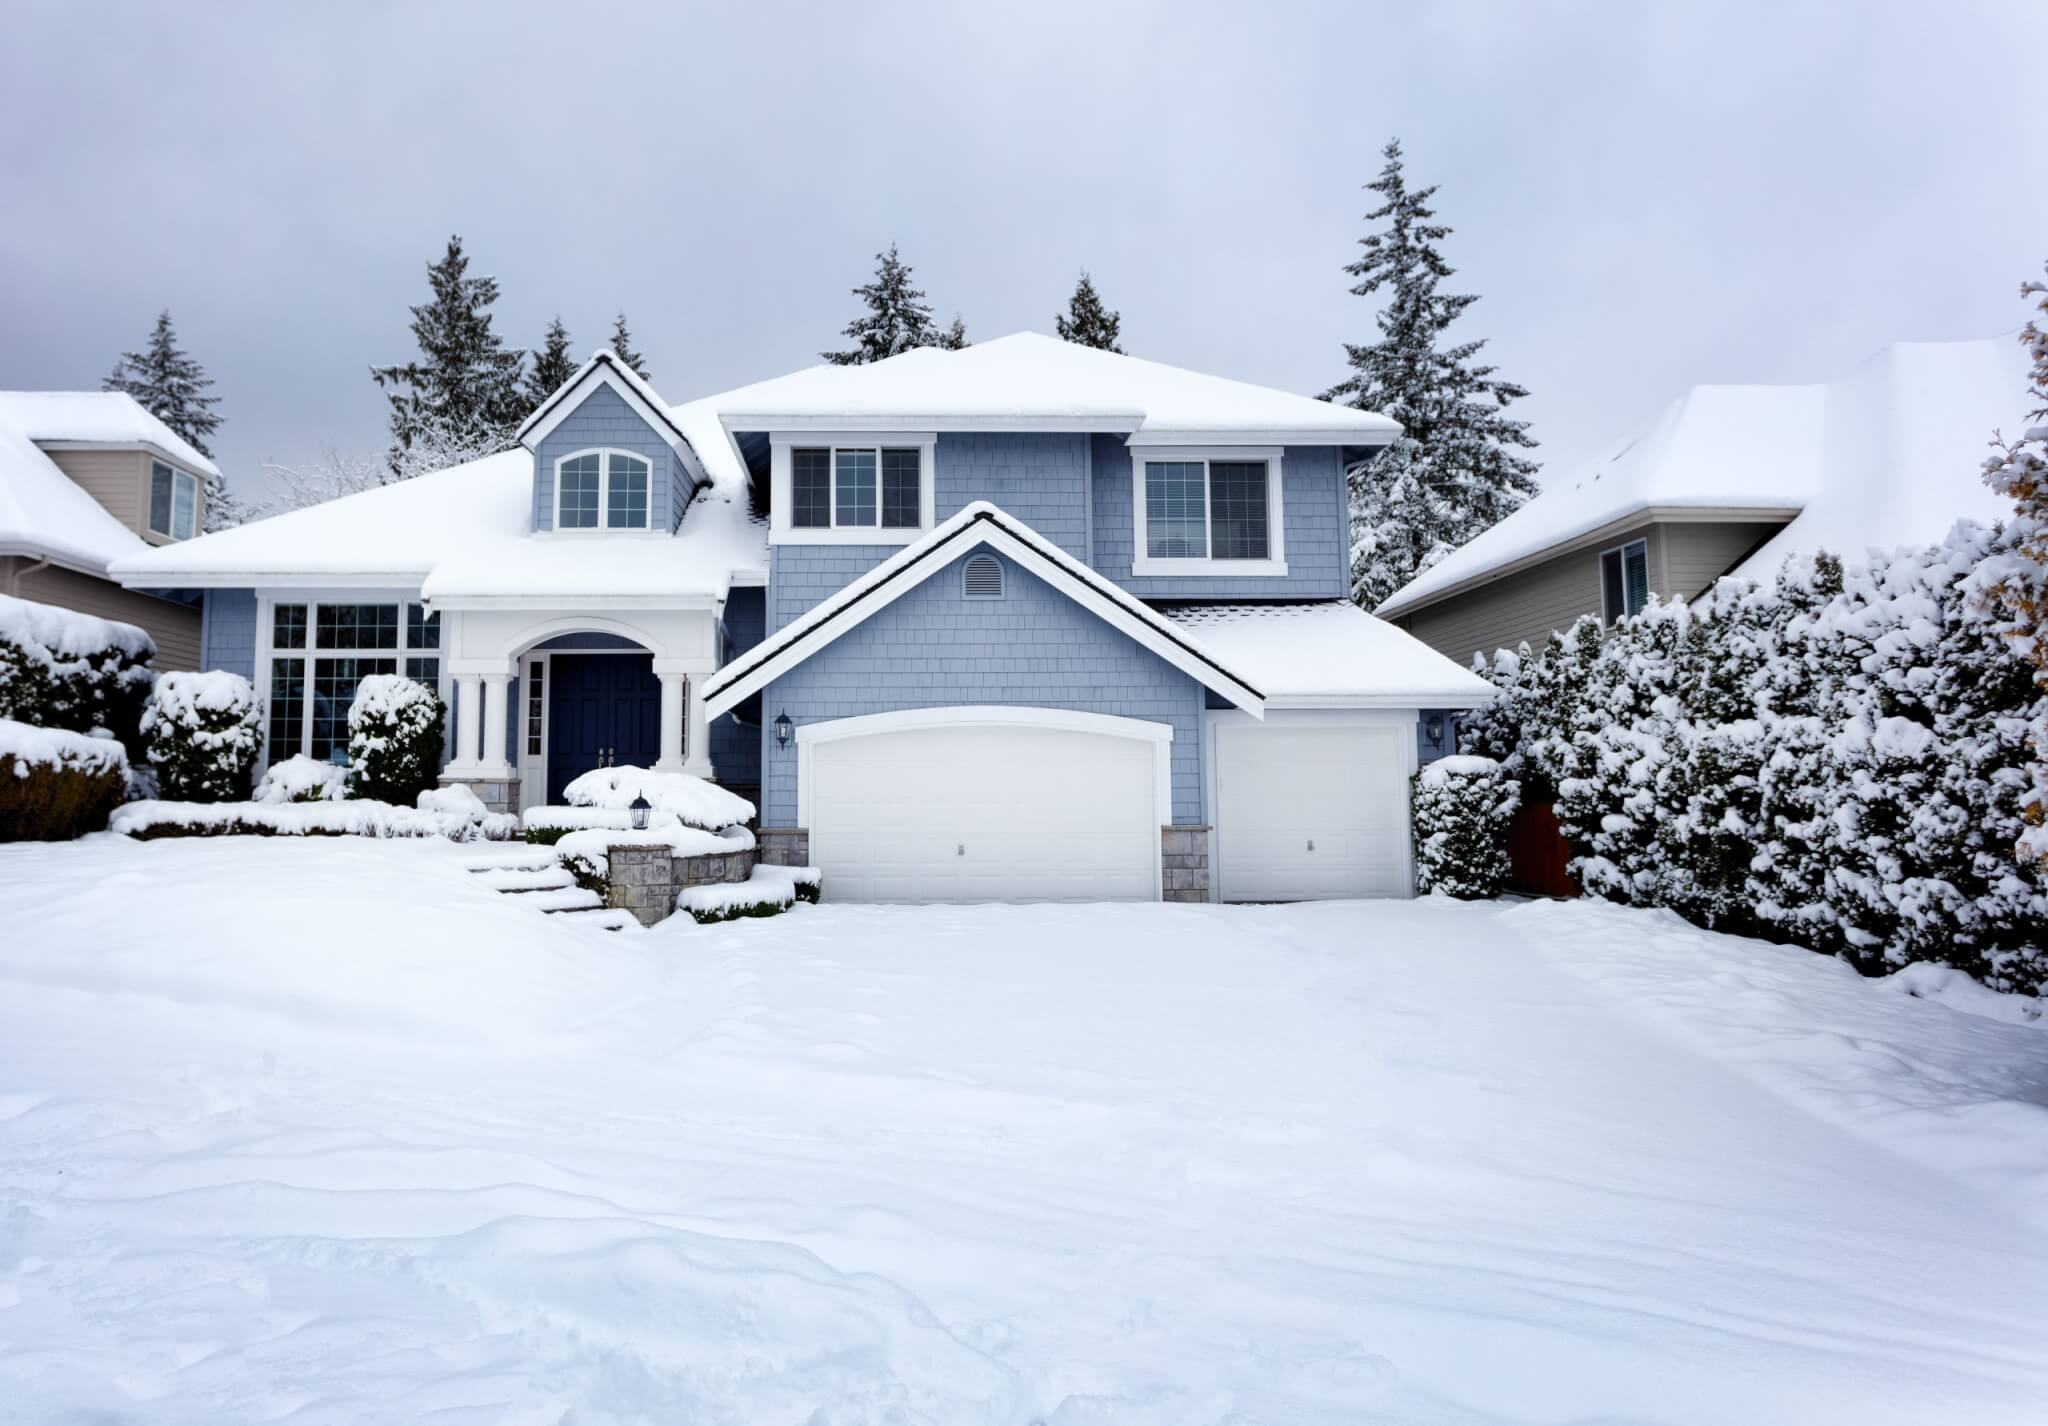 Home warranty for a winter home